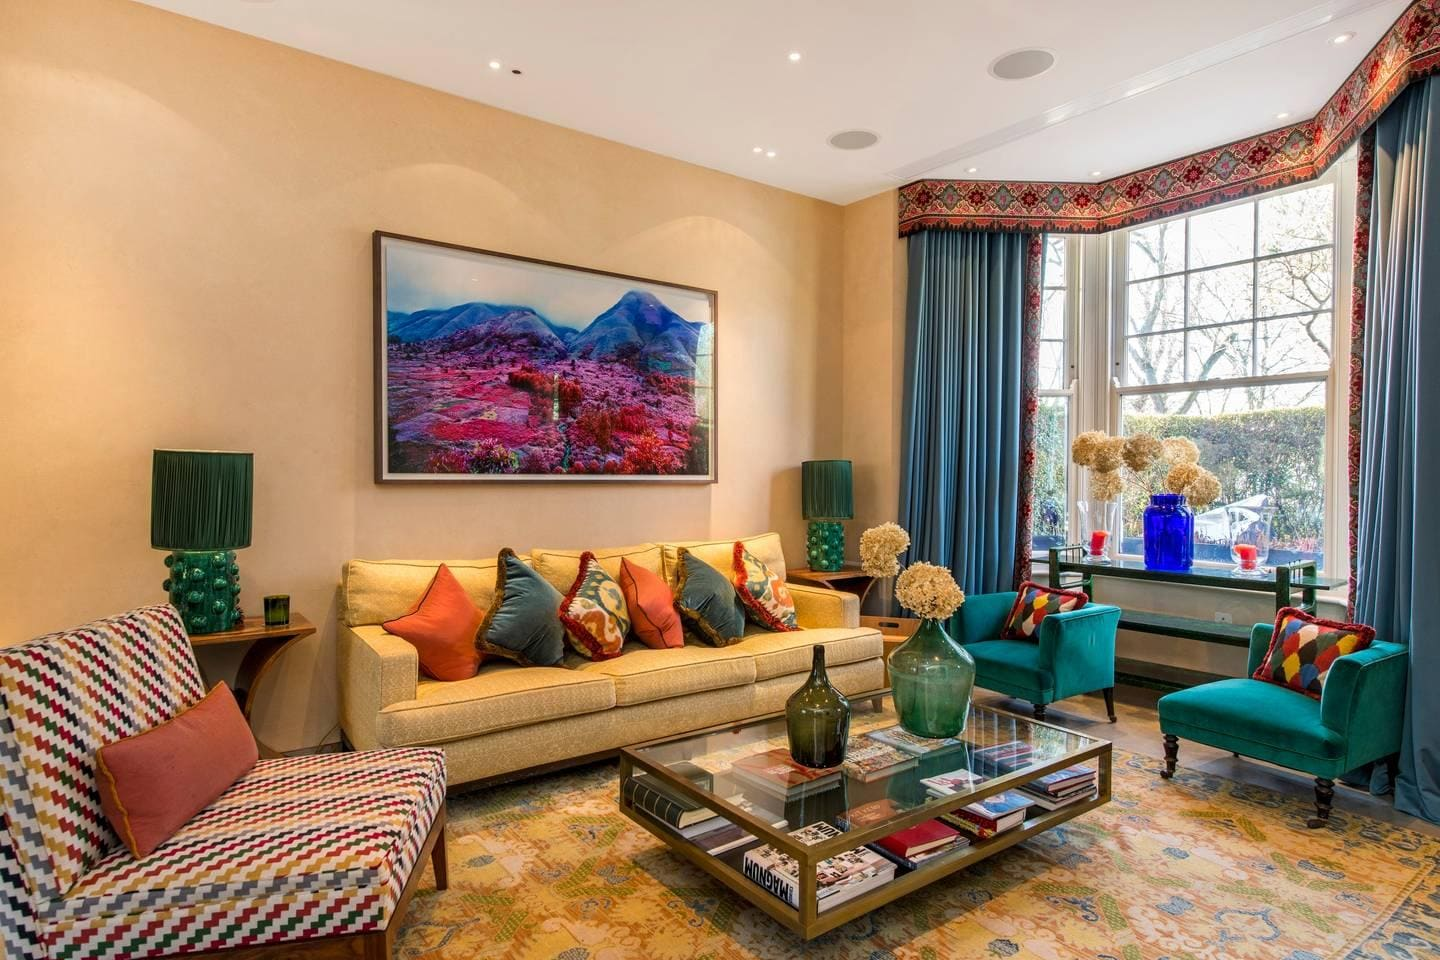 Property Image 2 - Colourful and Sophisticated Queen's Park Townhouse